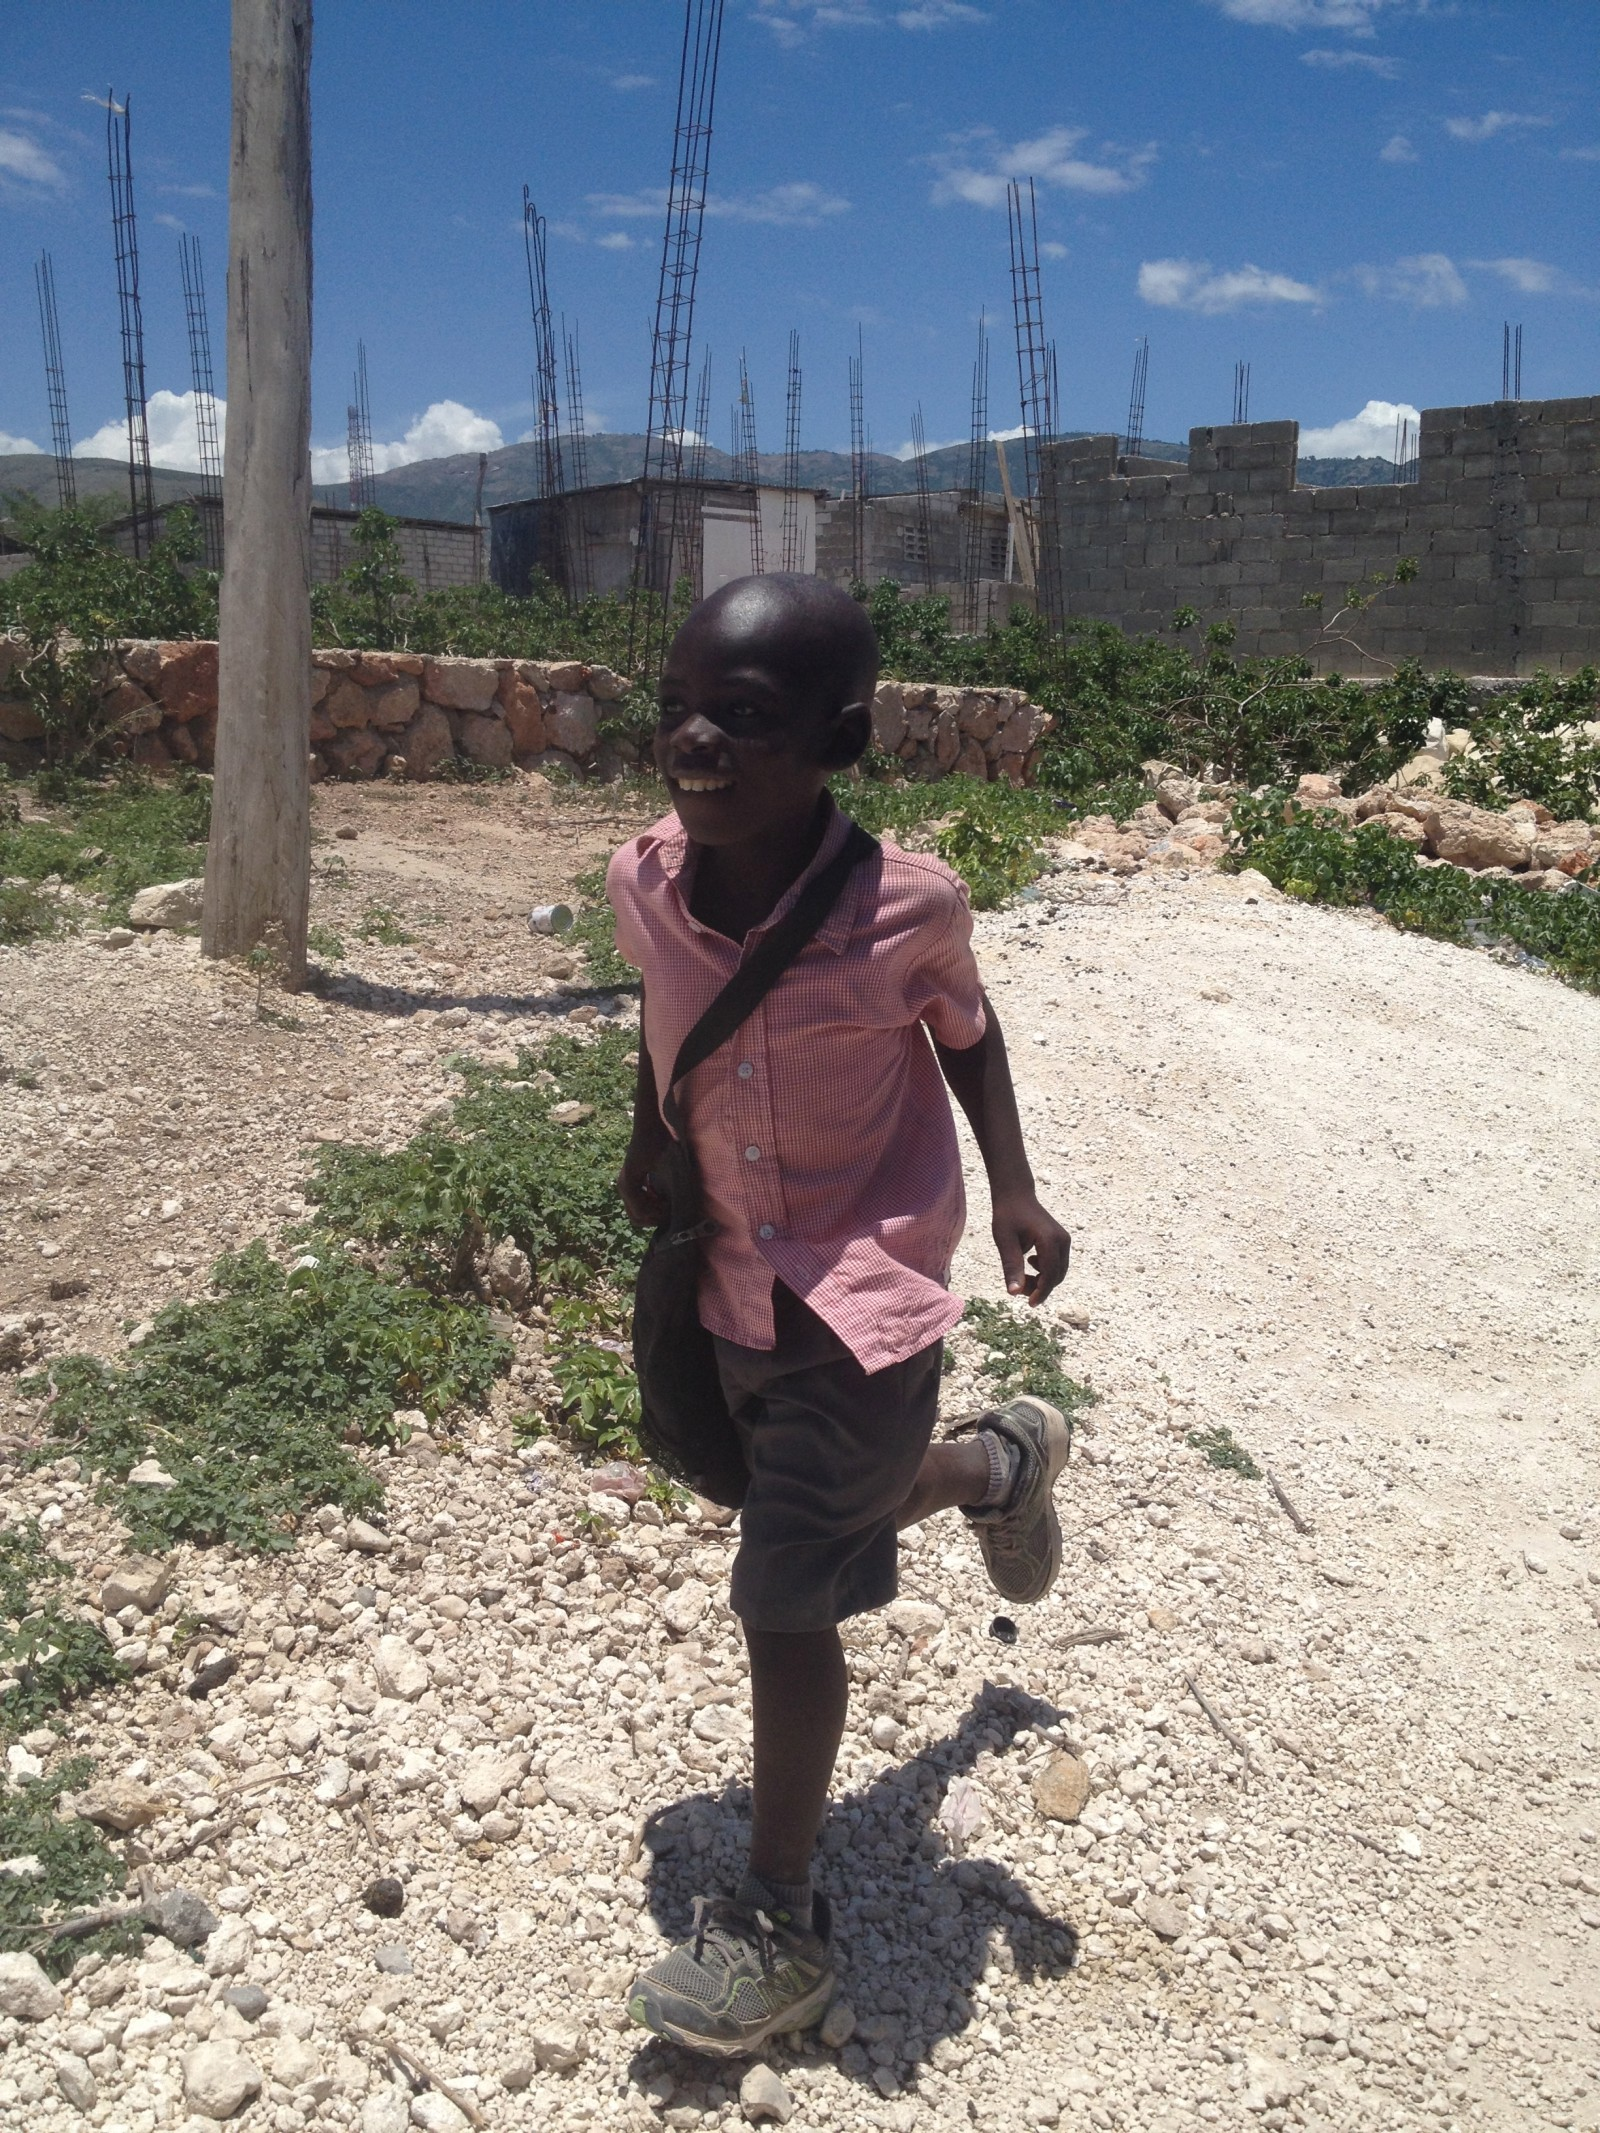 Haiti, 2014, Third World Awareness, TWA, volunteer, charity, helping others, poverty, haitians, kids, school kids, little boy, fundraising, school building project, Canaan, education, learning, giving